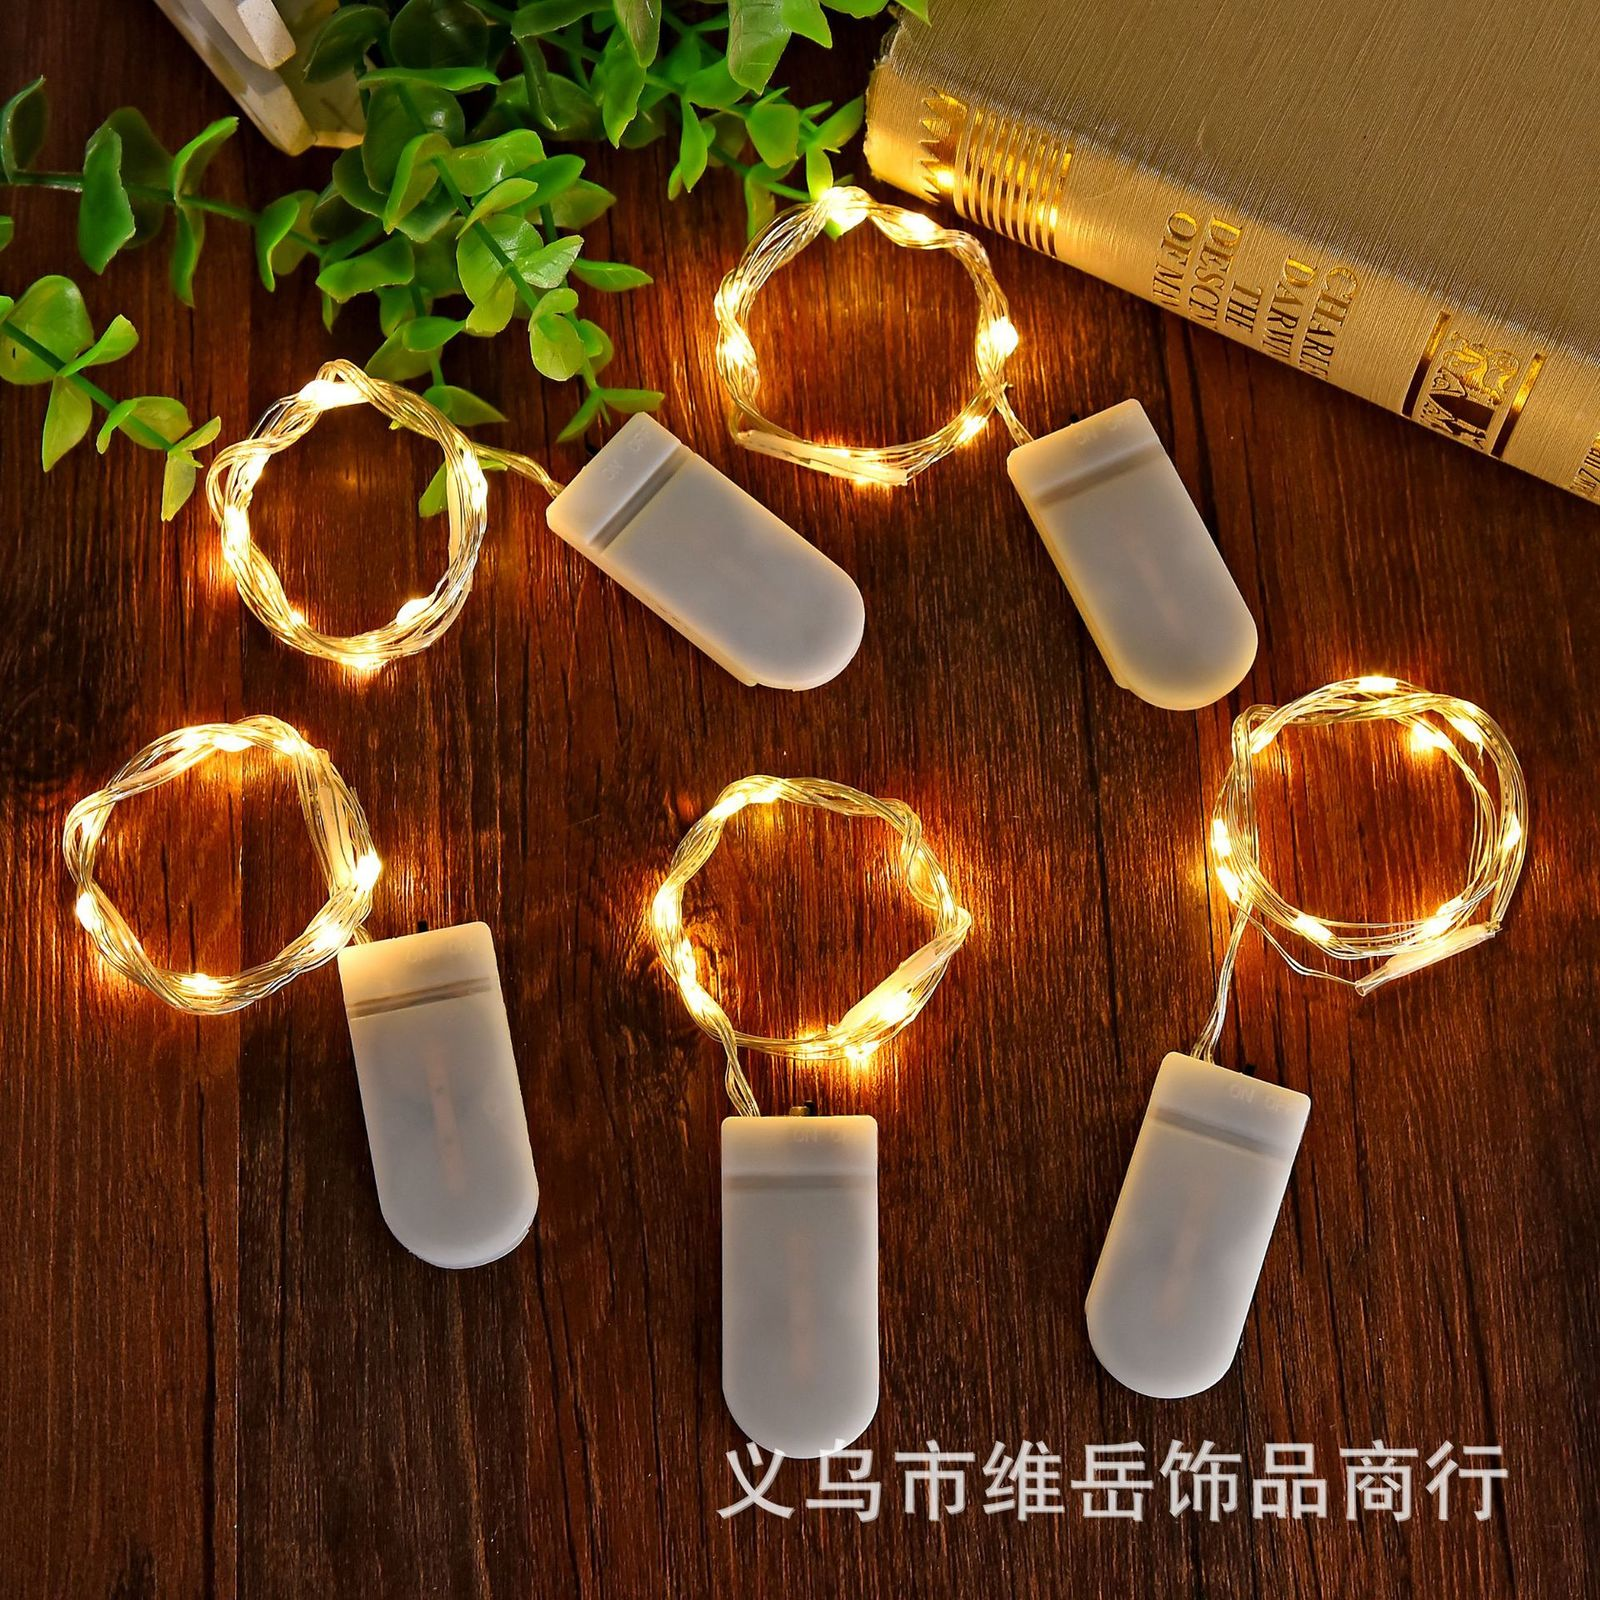 copper wire Button lamp LED light string Christmas Chinese Valentine's Eve gift box lamp DIY cake bouquet decorative copper wire lantern